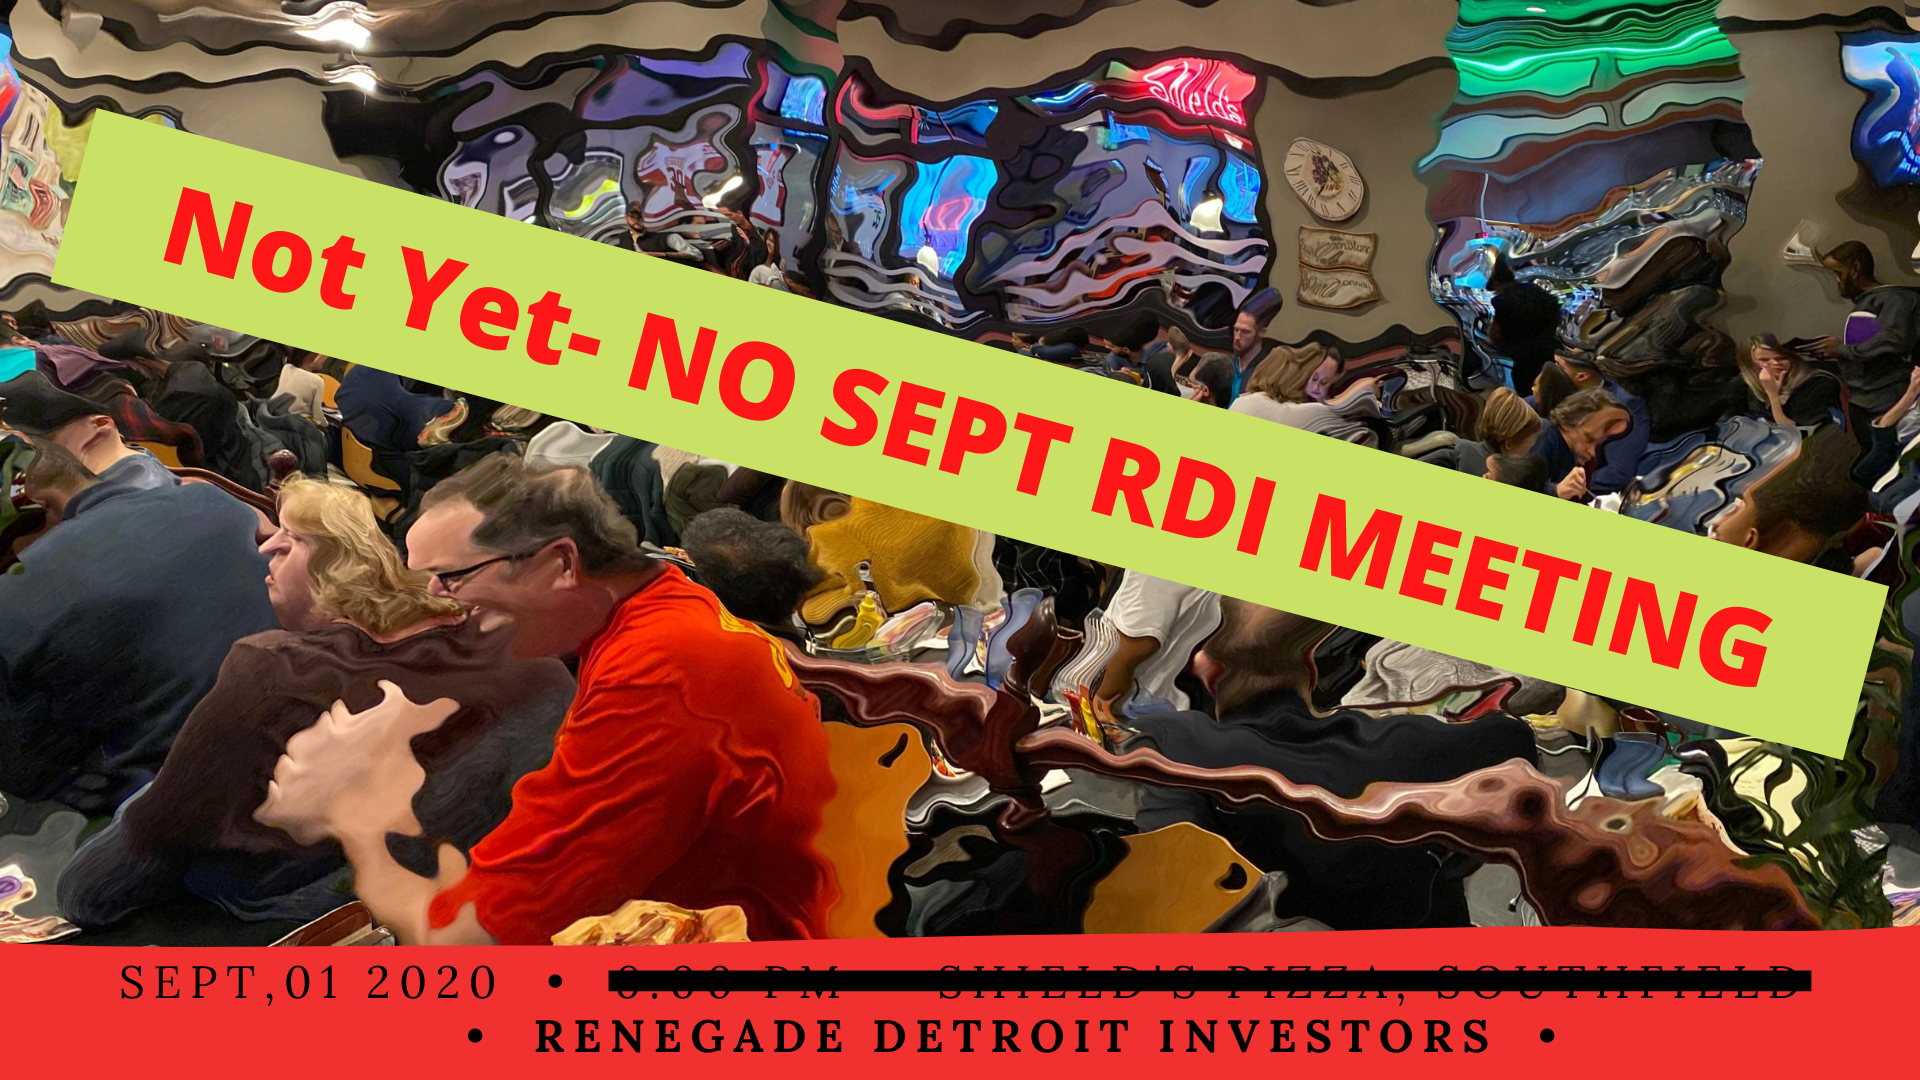 Not Yet - No Sept RDI Meeting